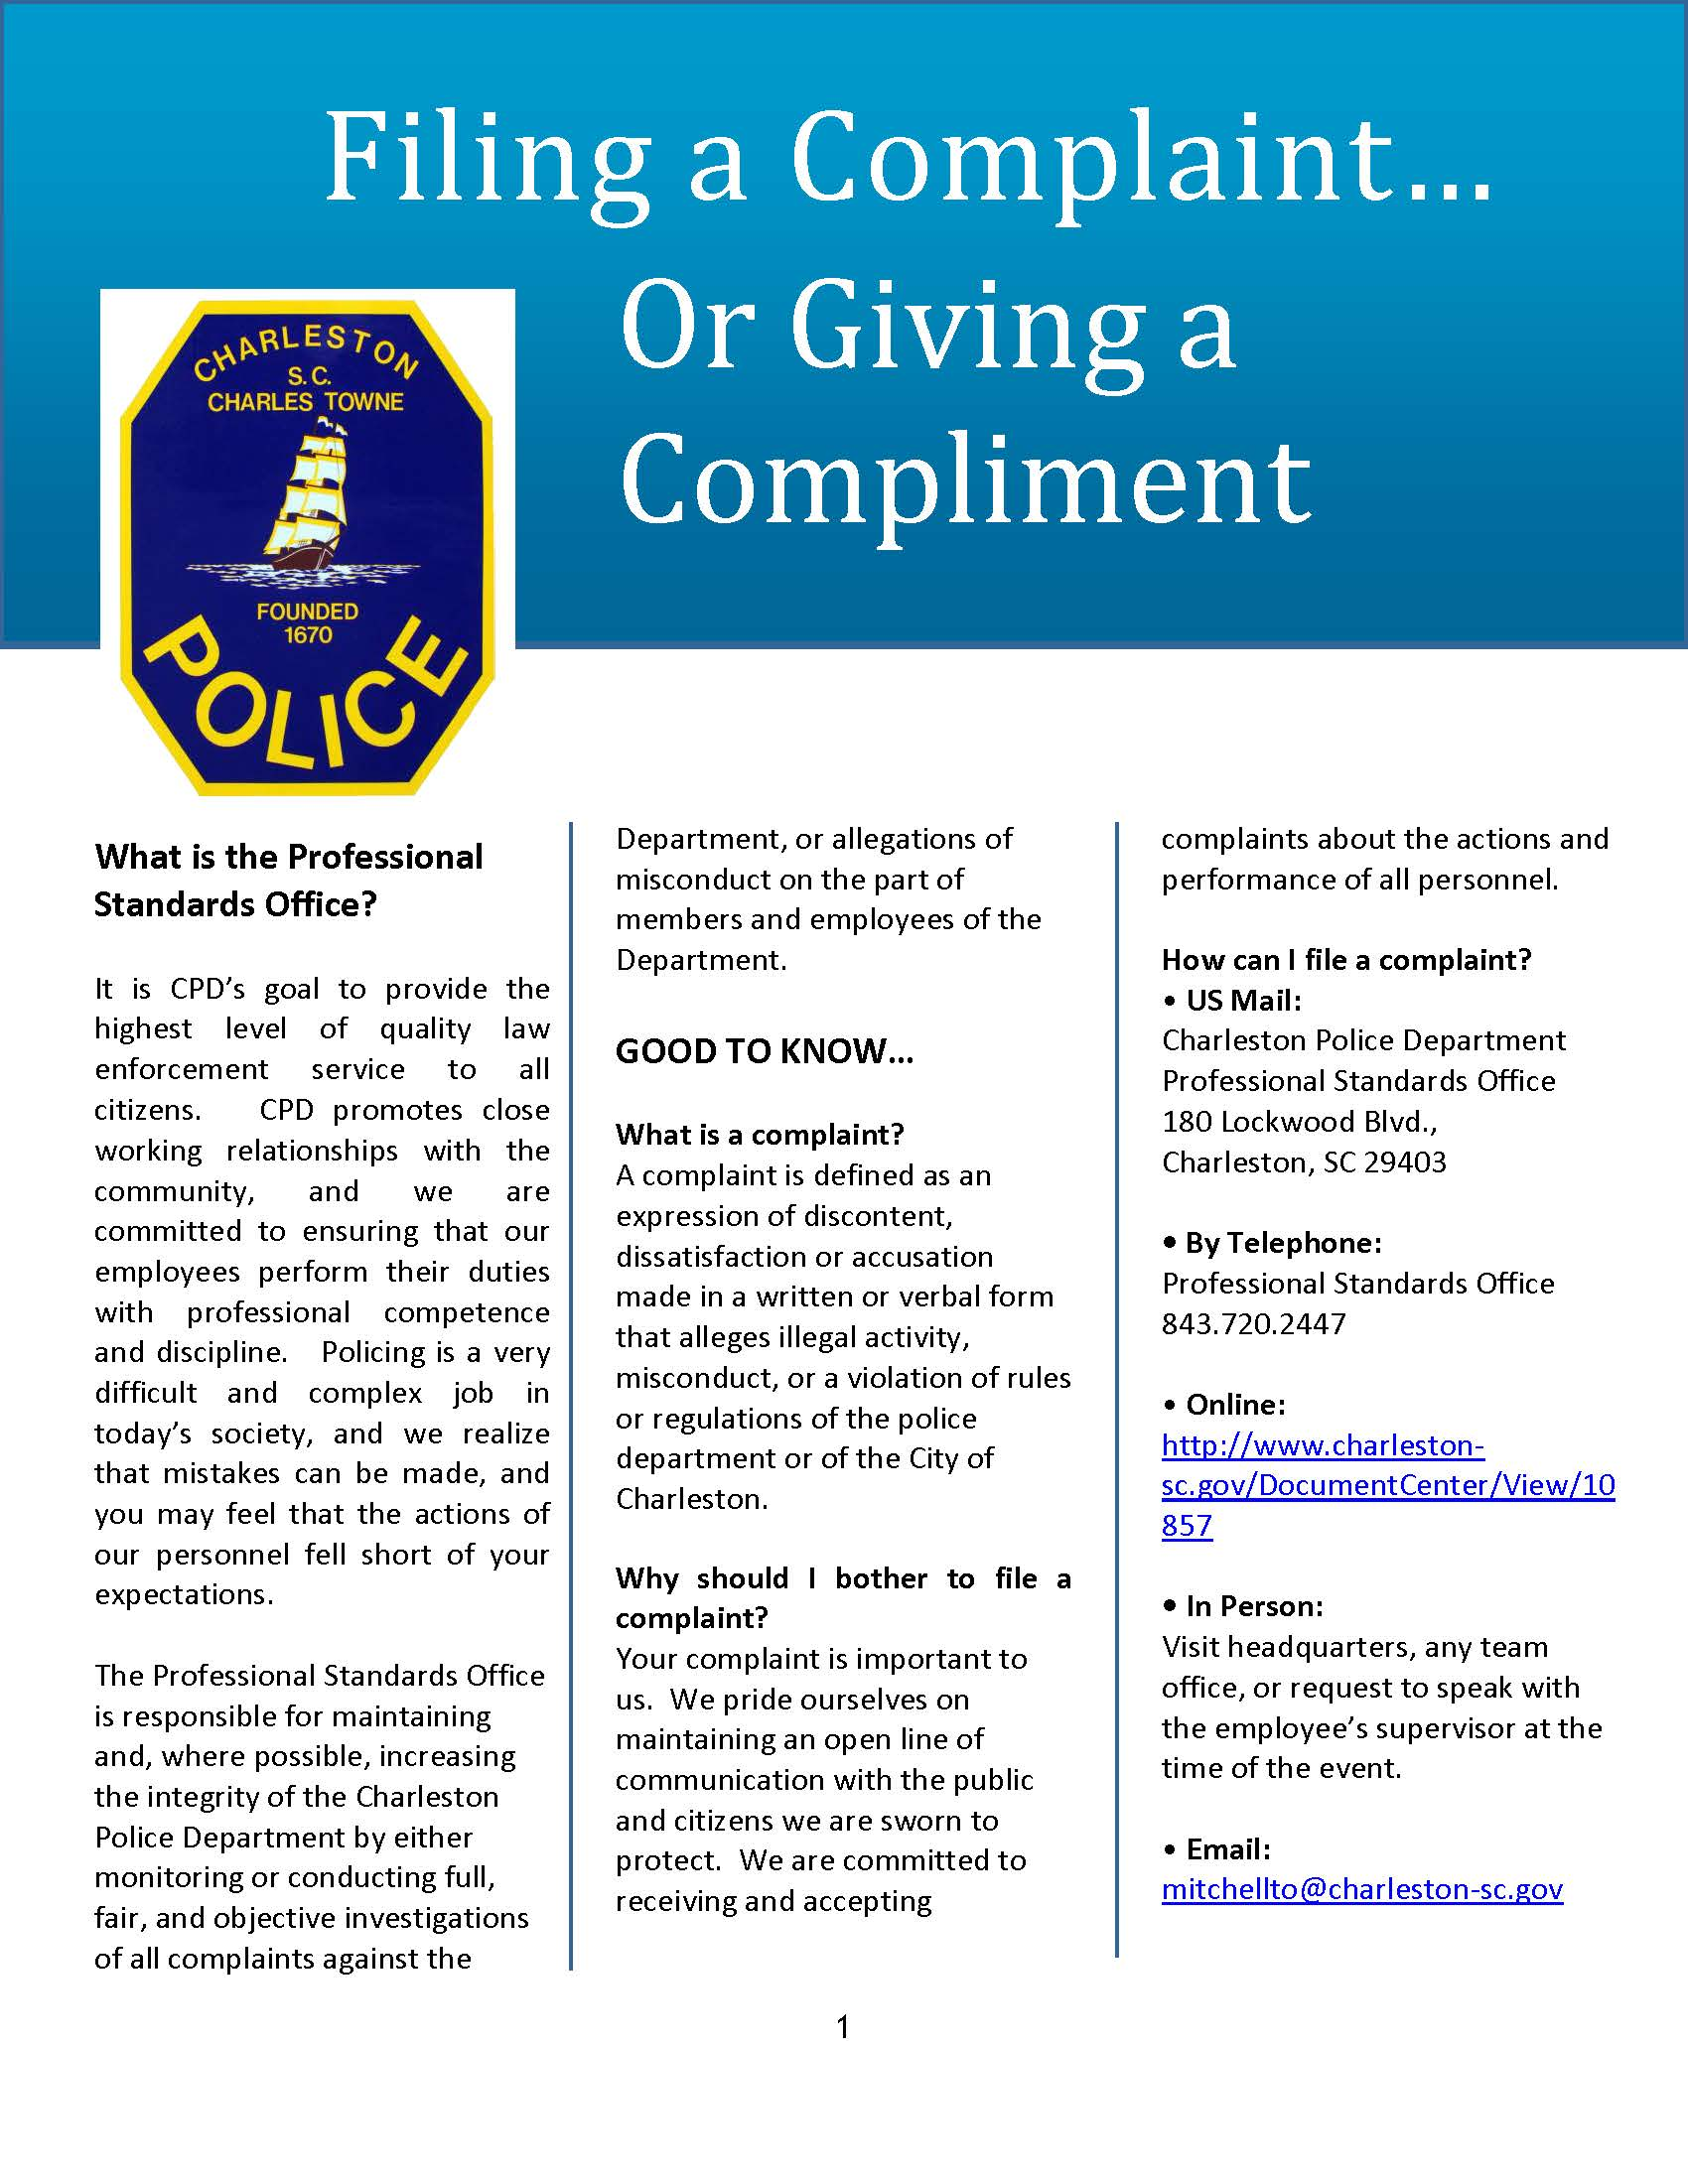 Complaint or Compliment Newsletter (2)_Page_1.jpg